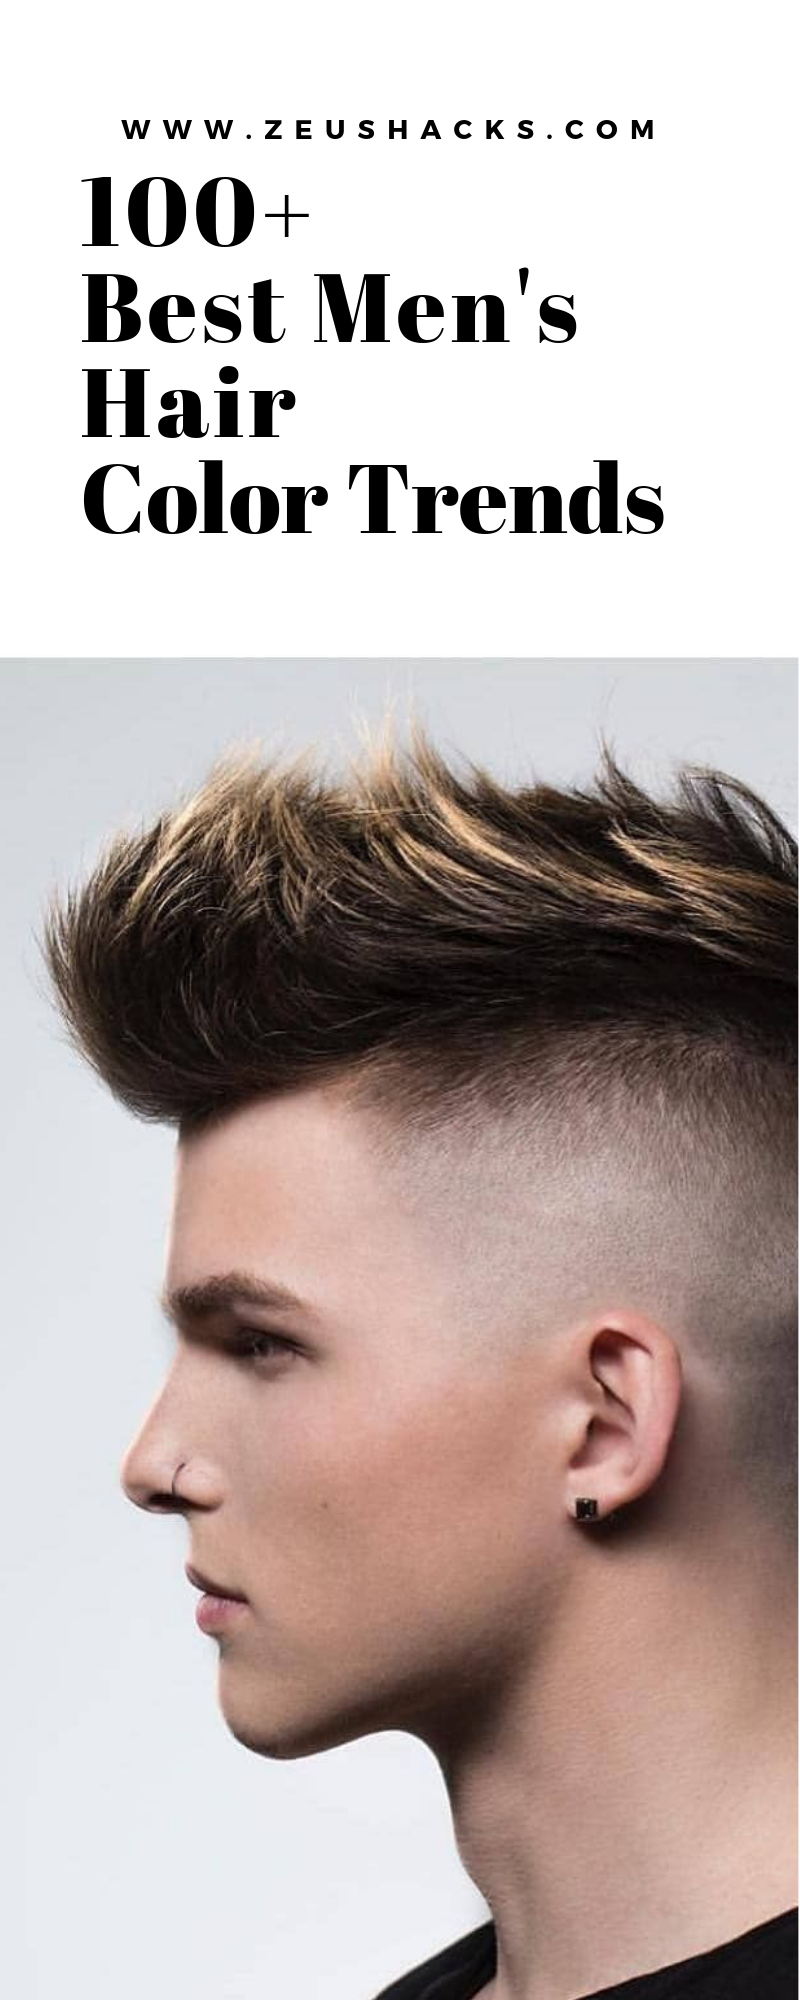 100 Men S Hair Color Trends 2019 Best Men S Haircuts Inc Skin Fades French Crop Side Part Faux Hawk Short Ha Mens Hair Colour Hair Color Mens Hairstyles